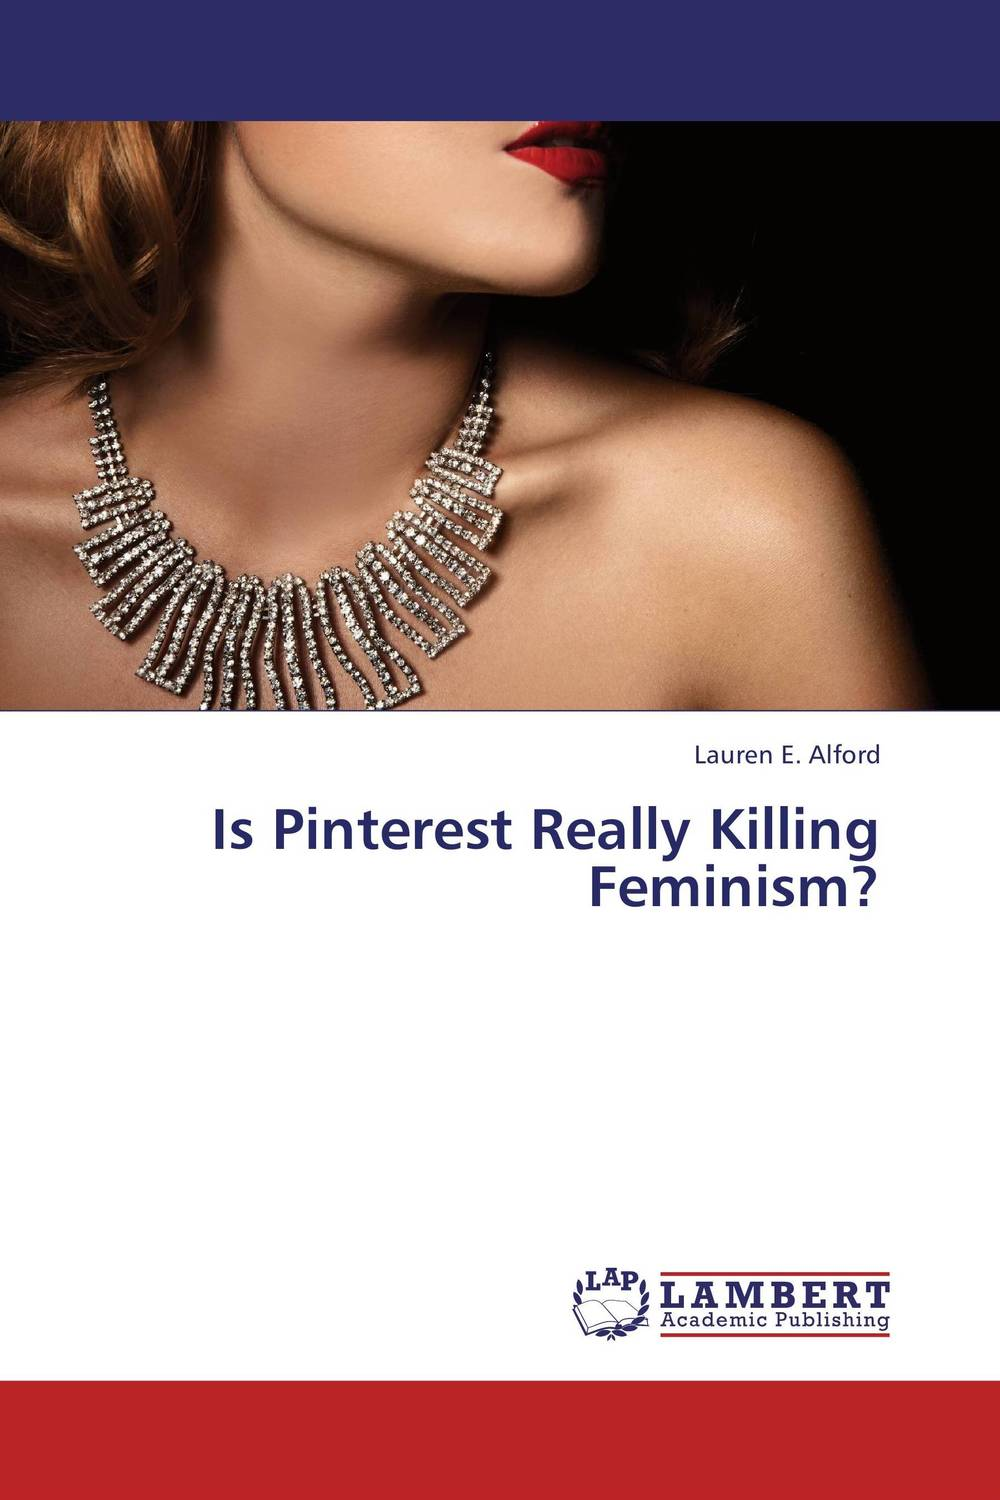 Is Pinterest Really Killing Feminism? feminism and criminology